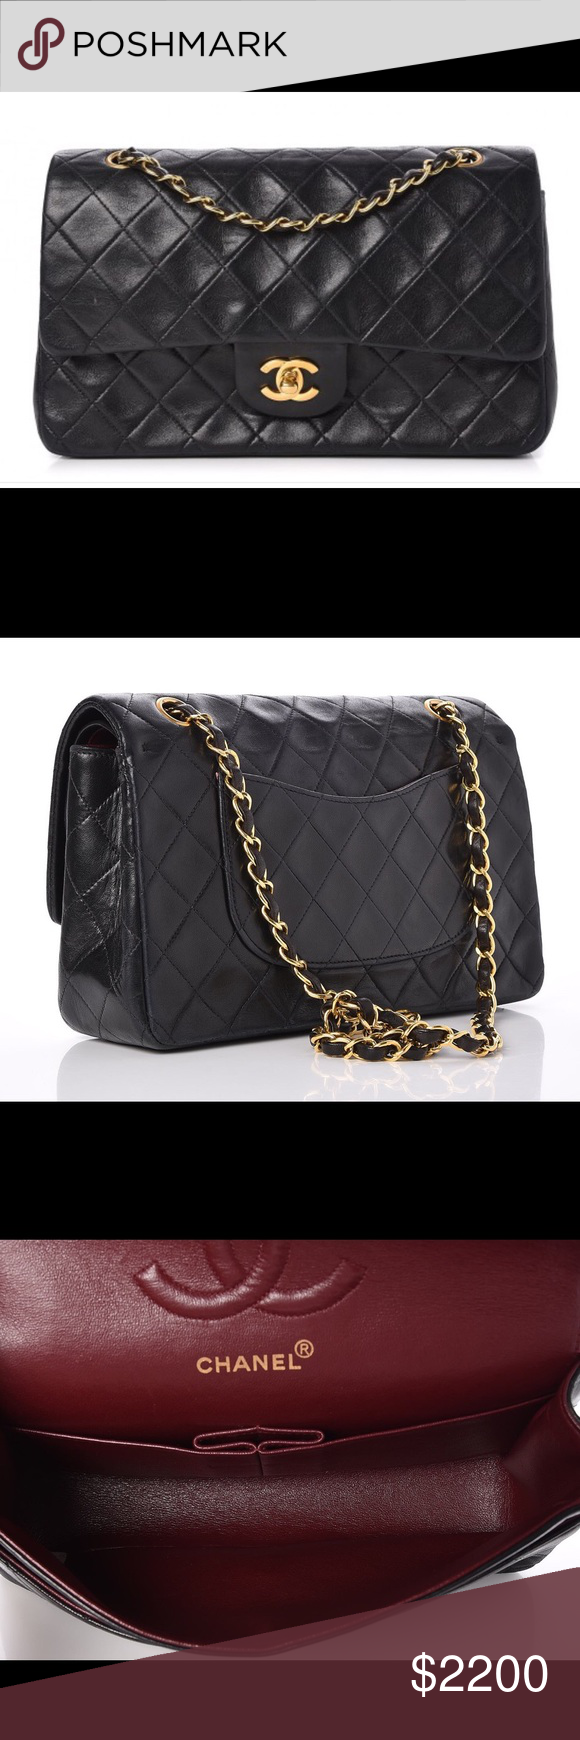 7195d63953fd CHANEL Lambskin Quilted Medium Double Flap Black Authentic CHANEL Lambskin  Quilted Medium Double Flap Black.